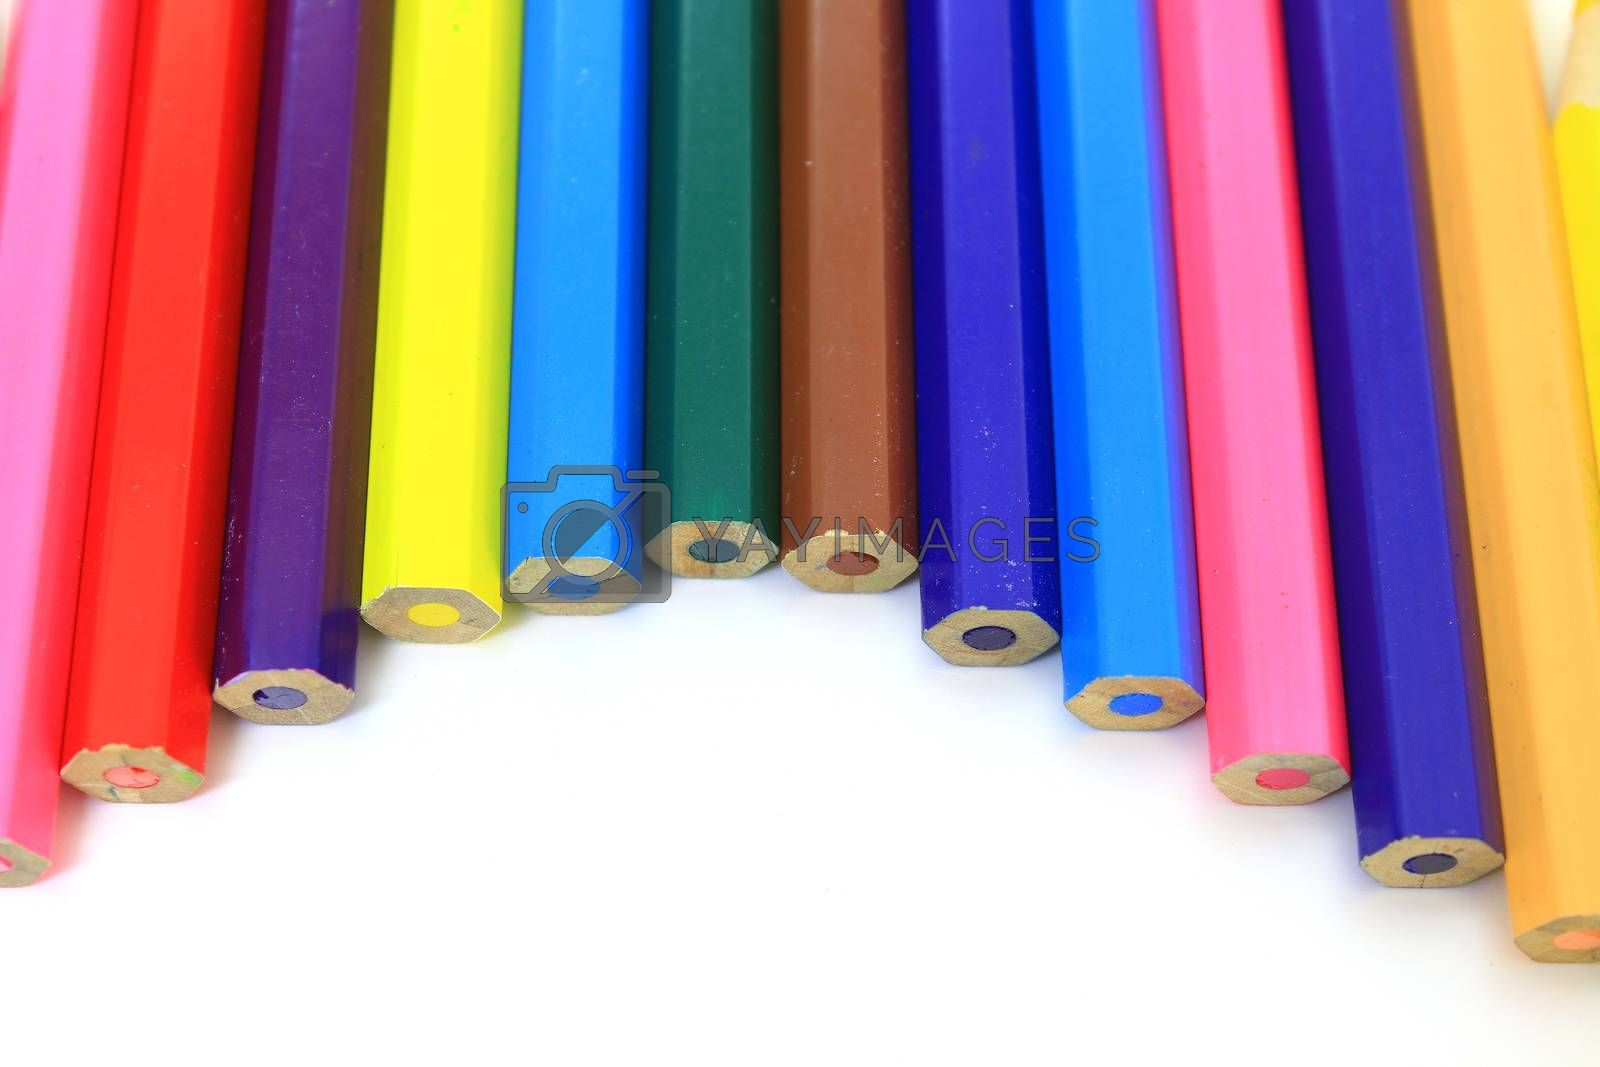 Royalty free image of colored pencils   by forest71